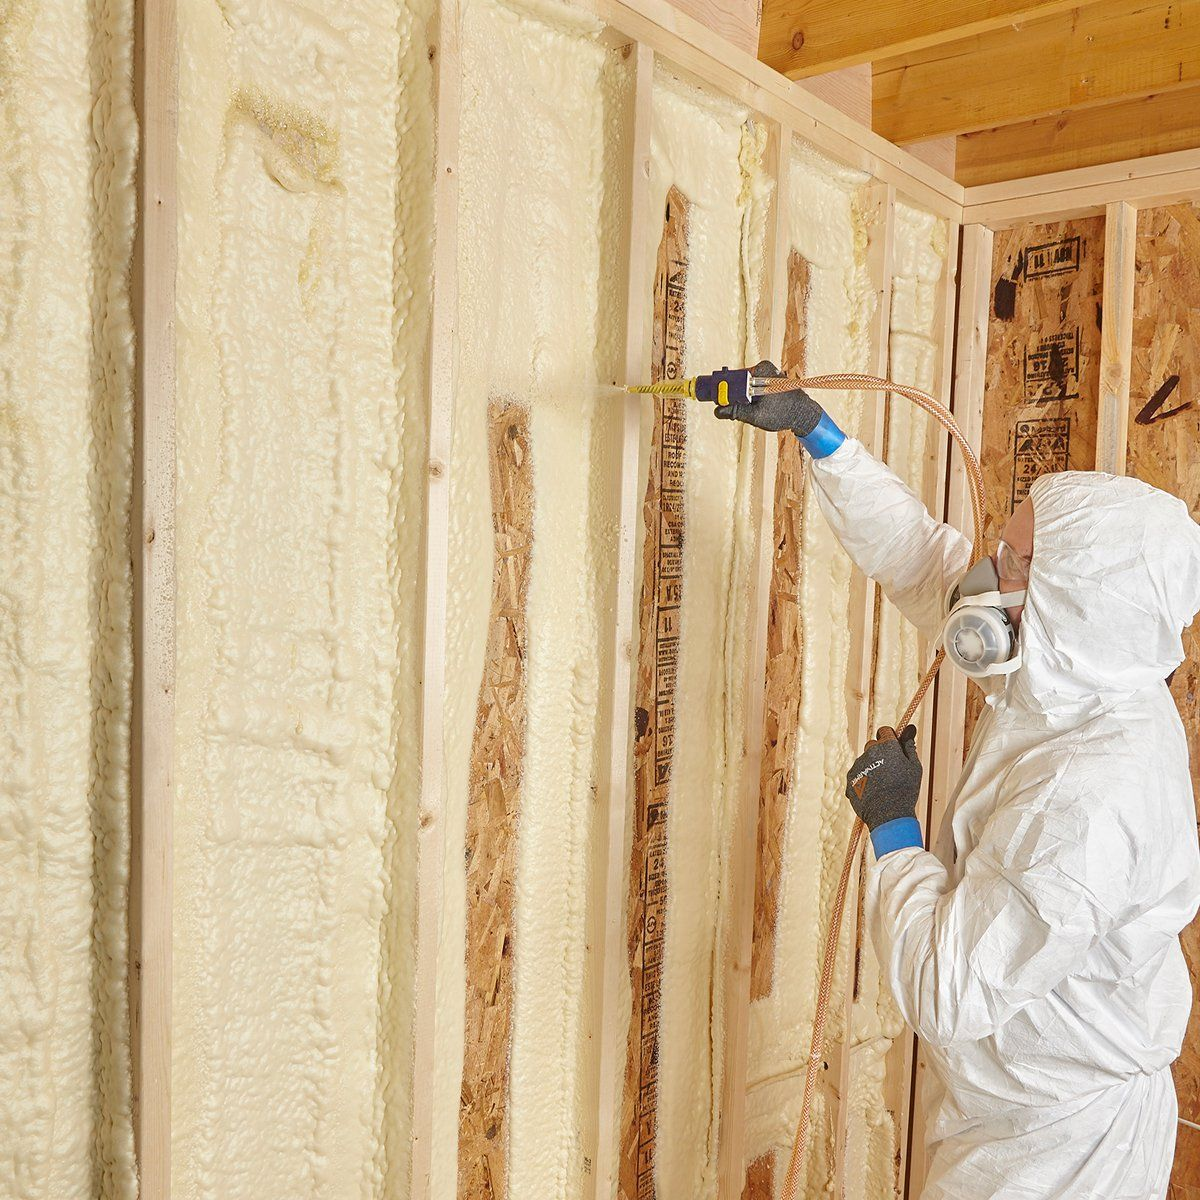 Spray Foam Insulation Tips Spray Foam Insulation Kits Diy Spray Foam Insulation Spray Foam Insulation